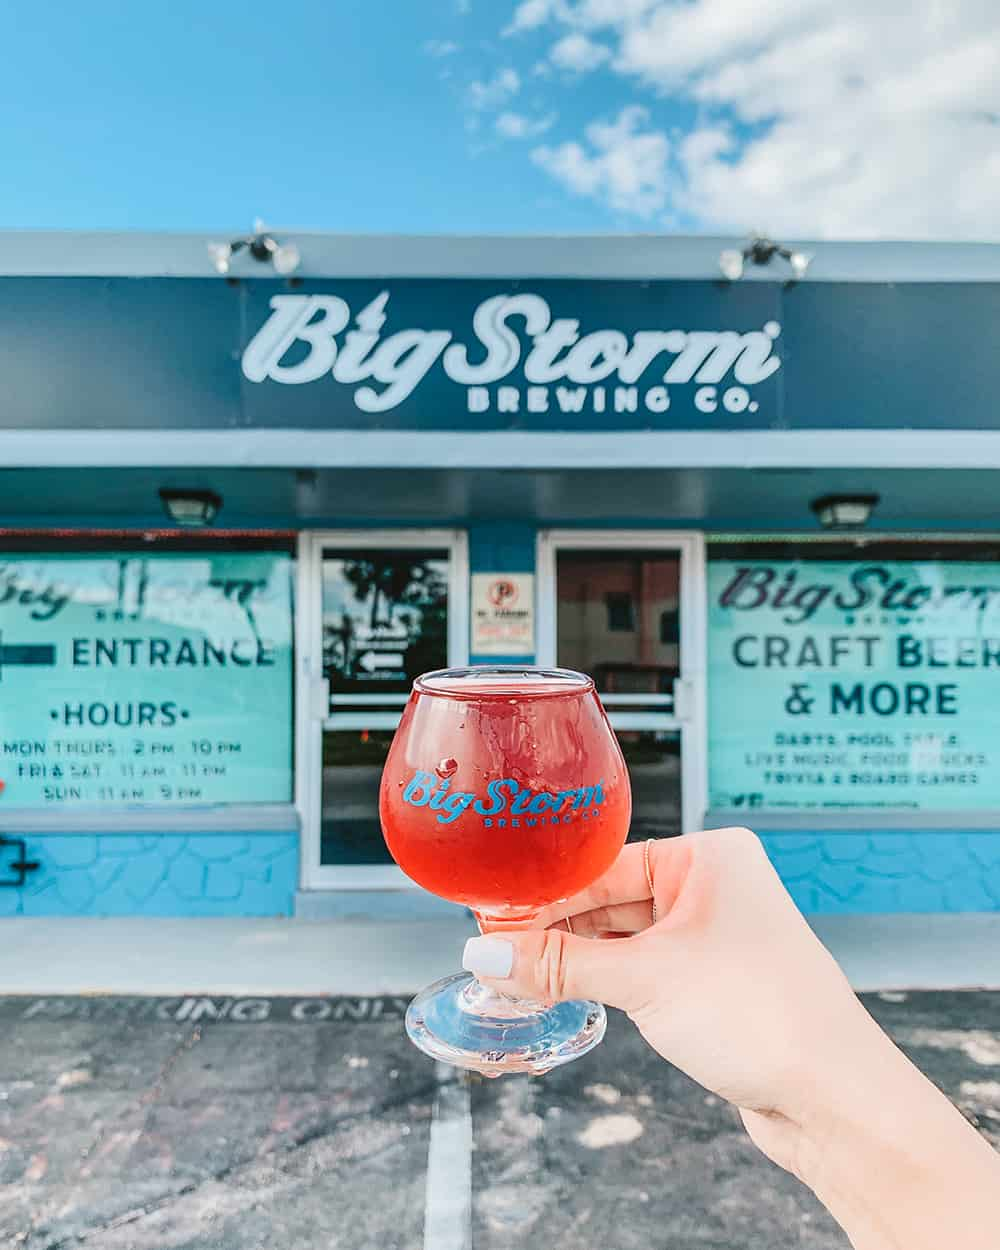 Big Storm Brewing Co in Fort Myers Florida